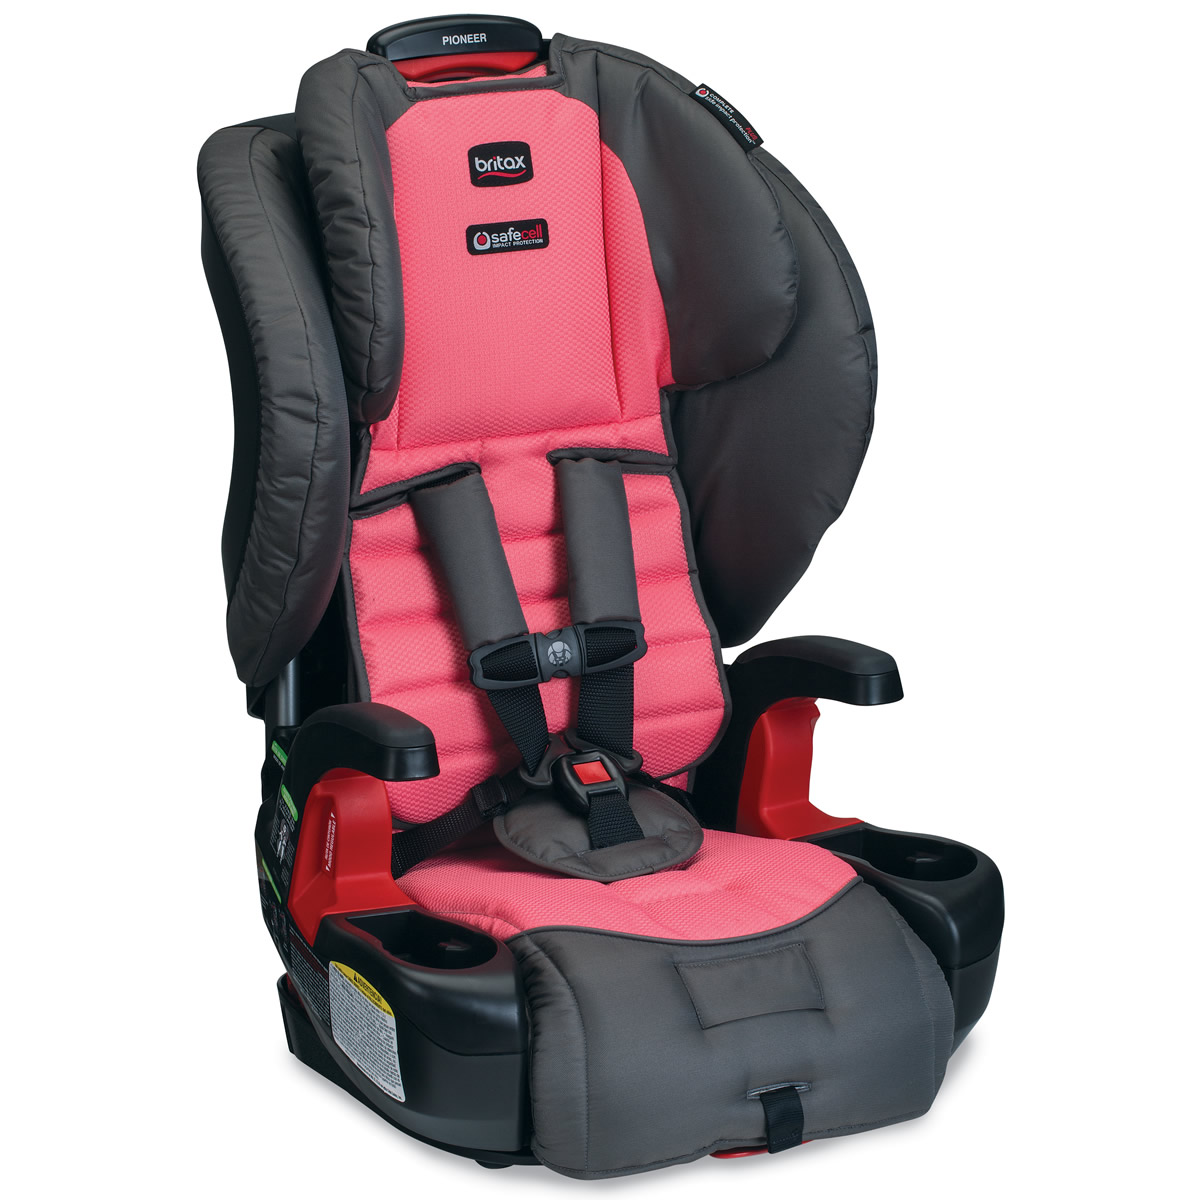 Point Harness Travel Car Seat